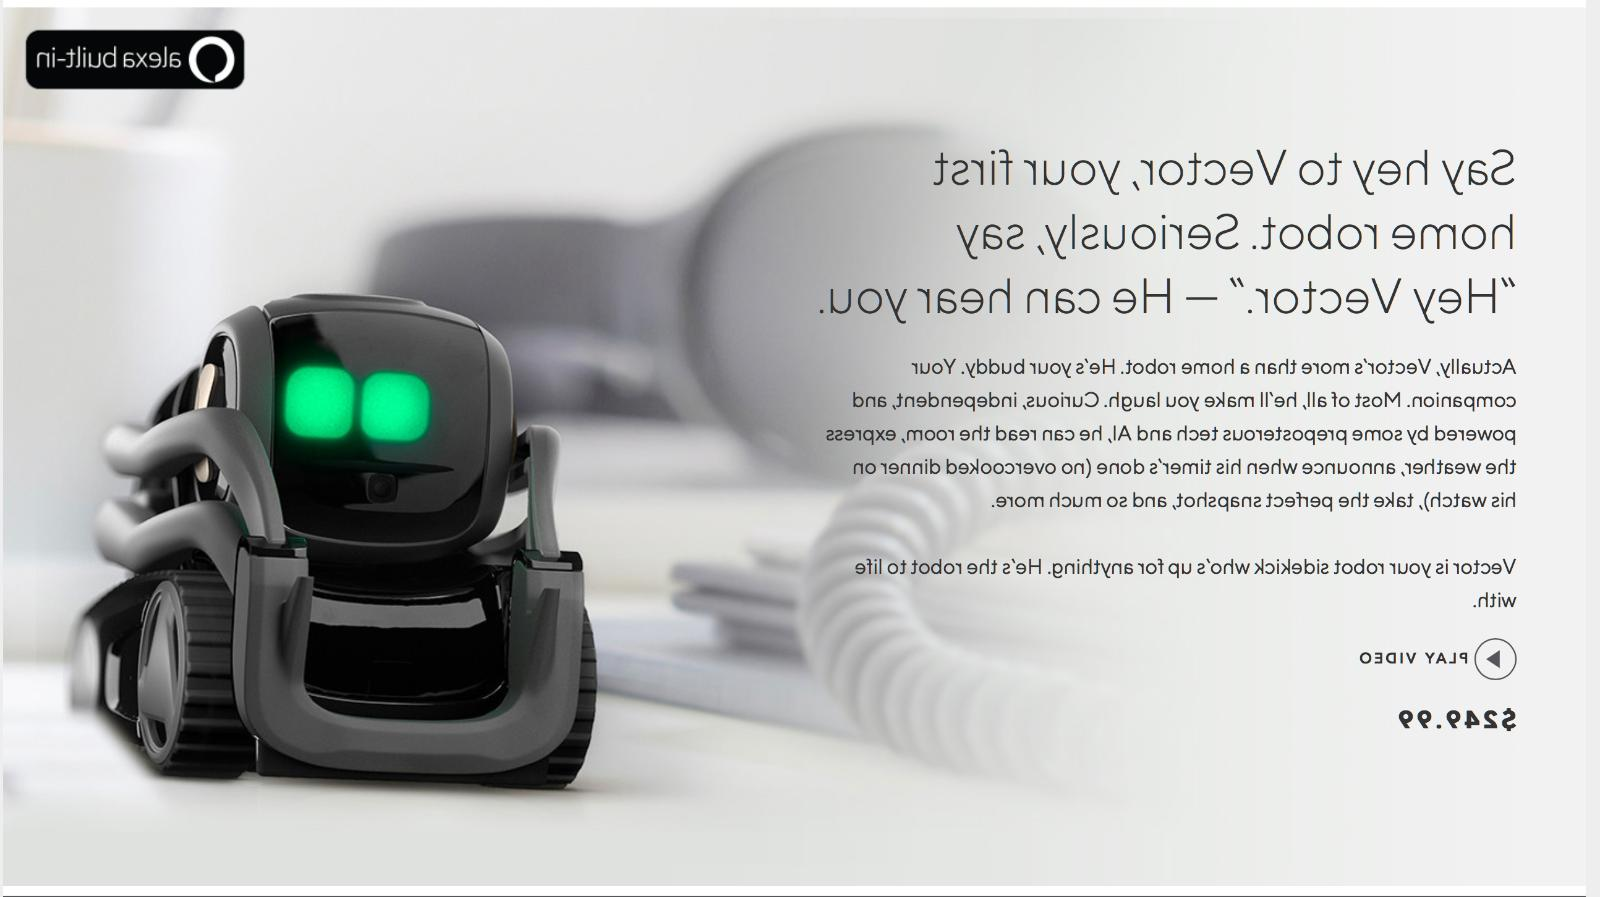 Anki Robot Toy Robot With Built In